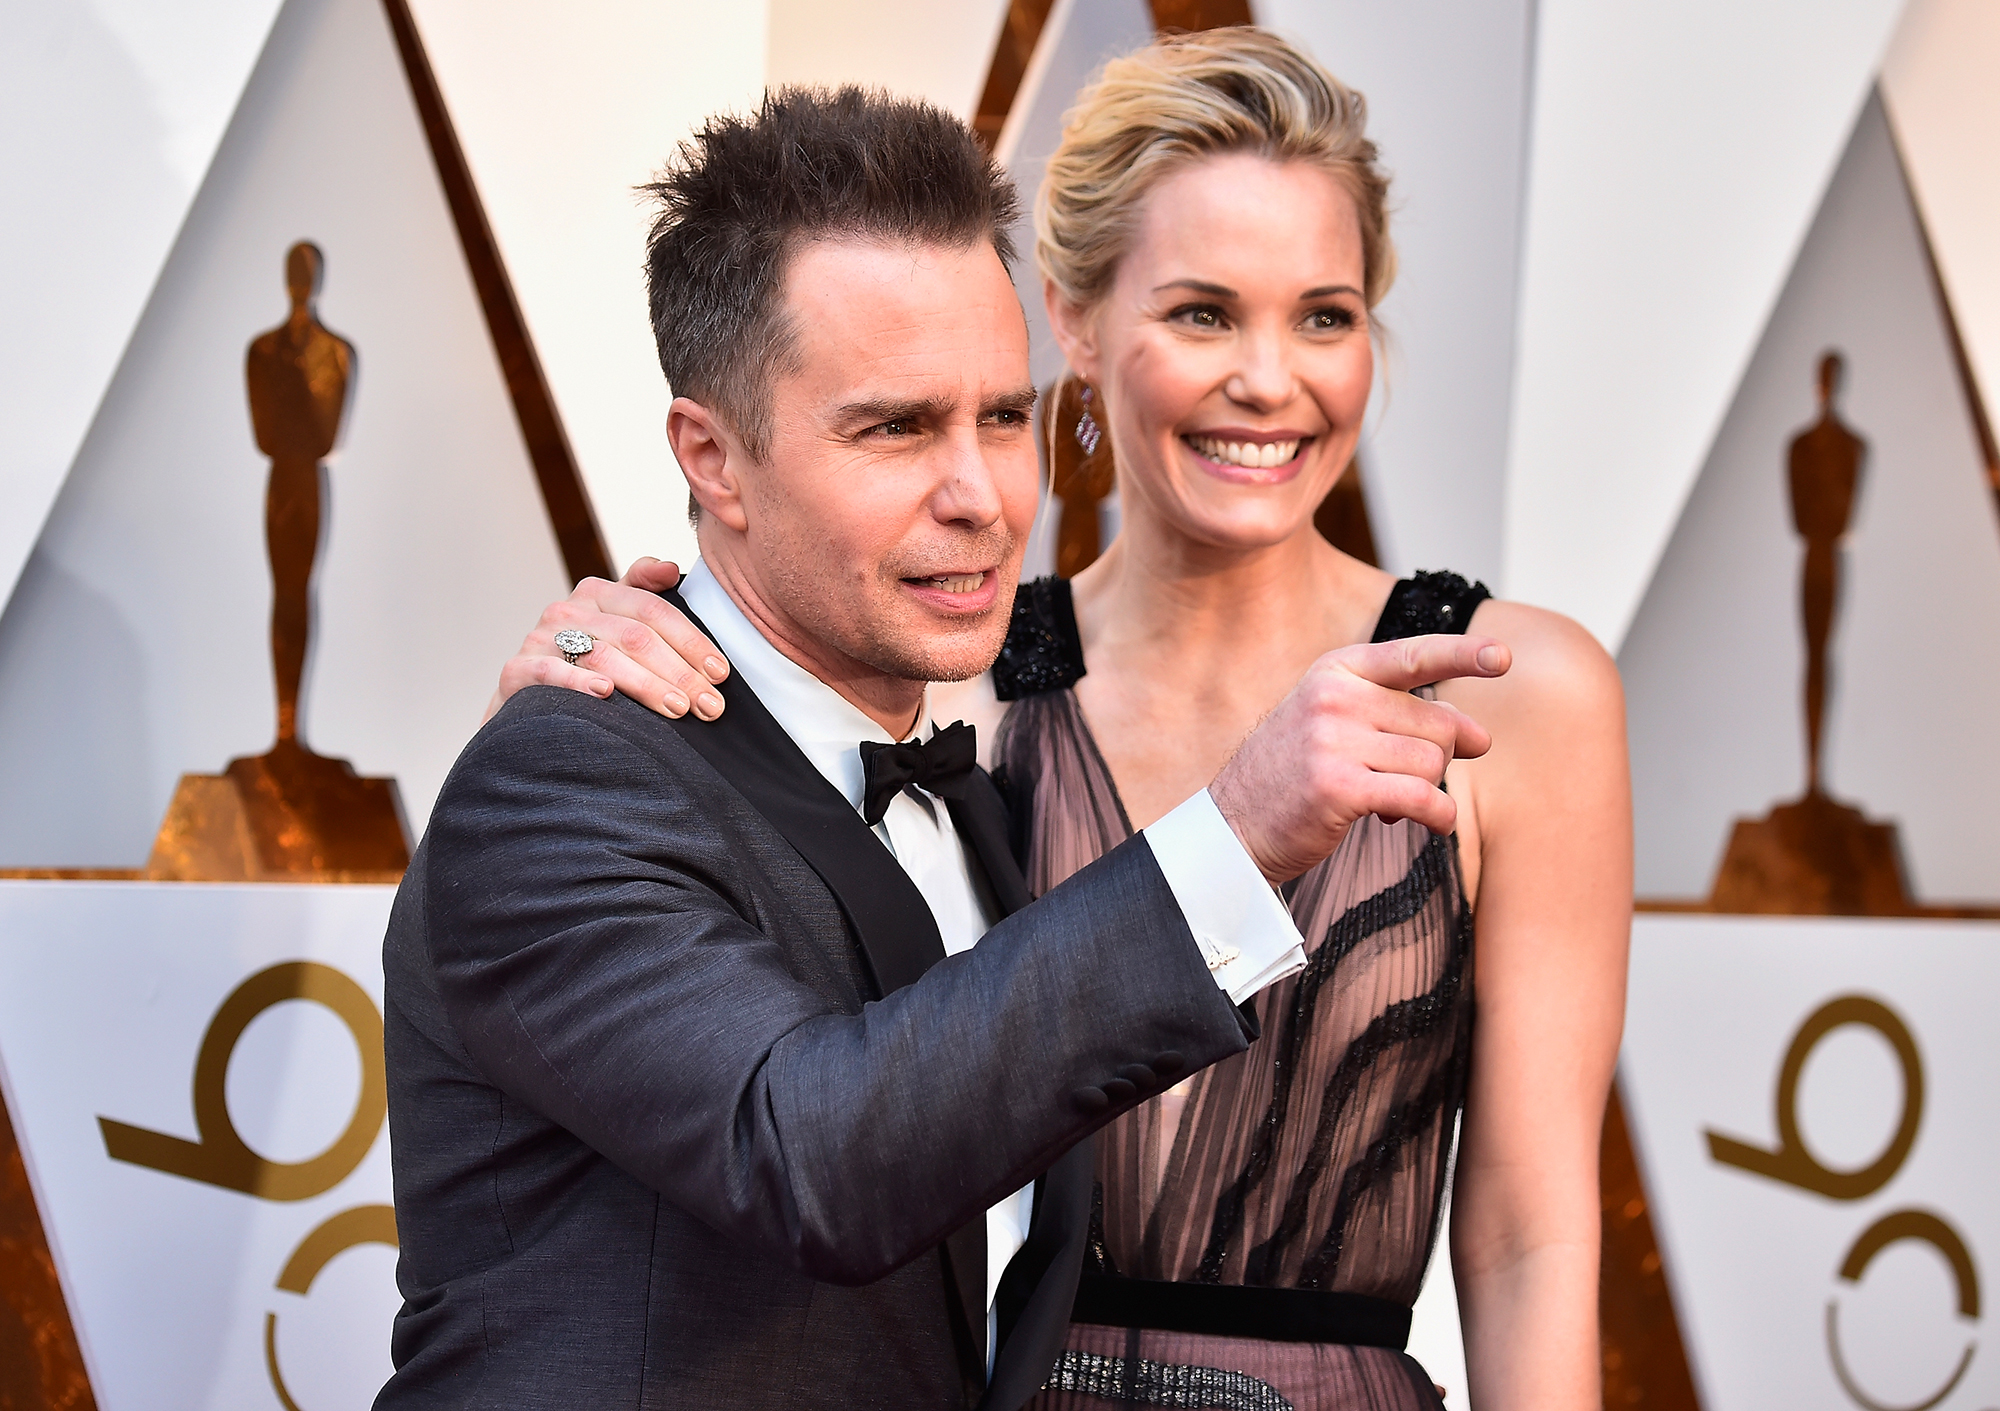 Sam Rockwell wins 2018 Oscar for 'Best Supporting Actor' Special